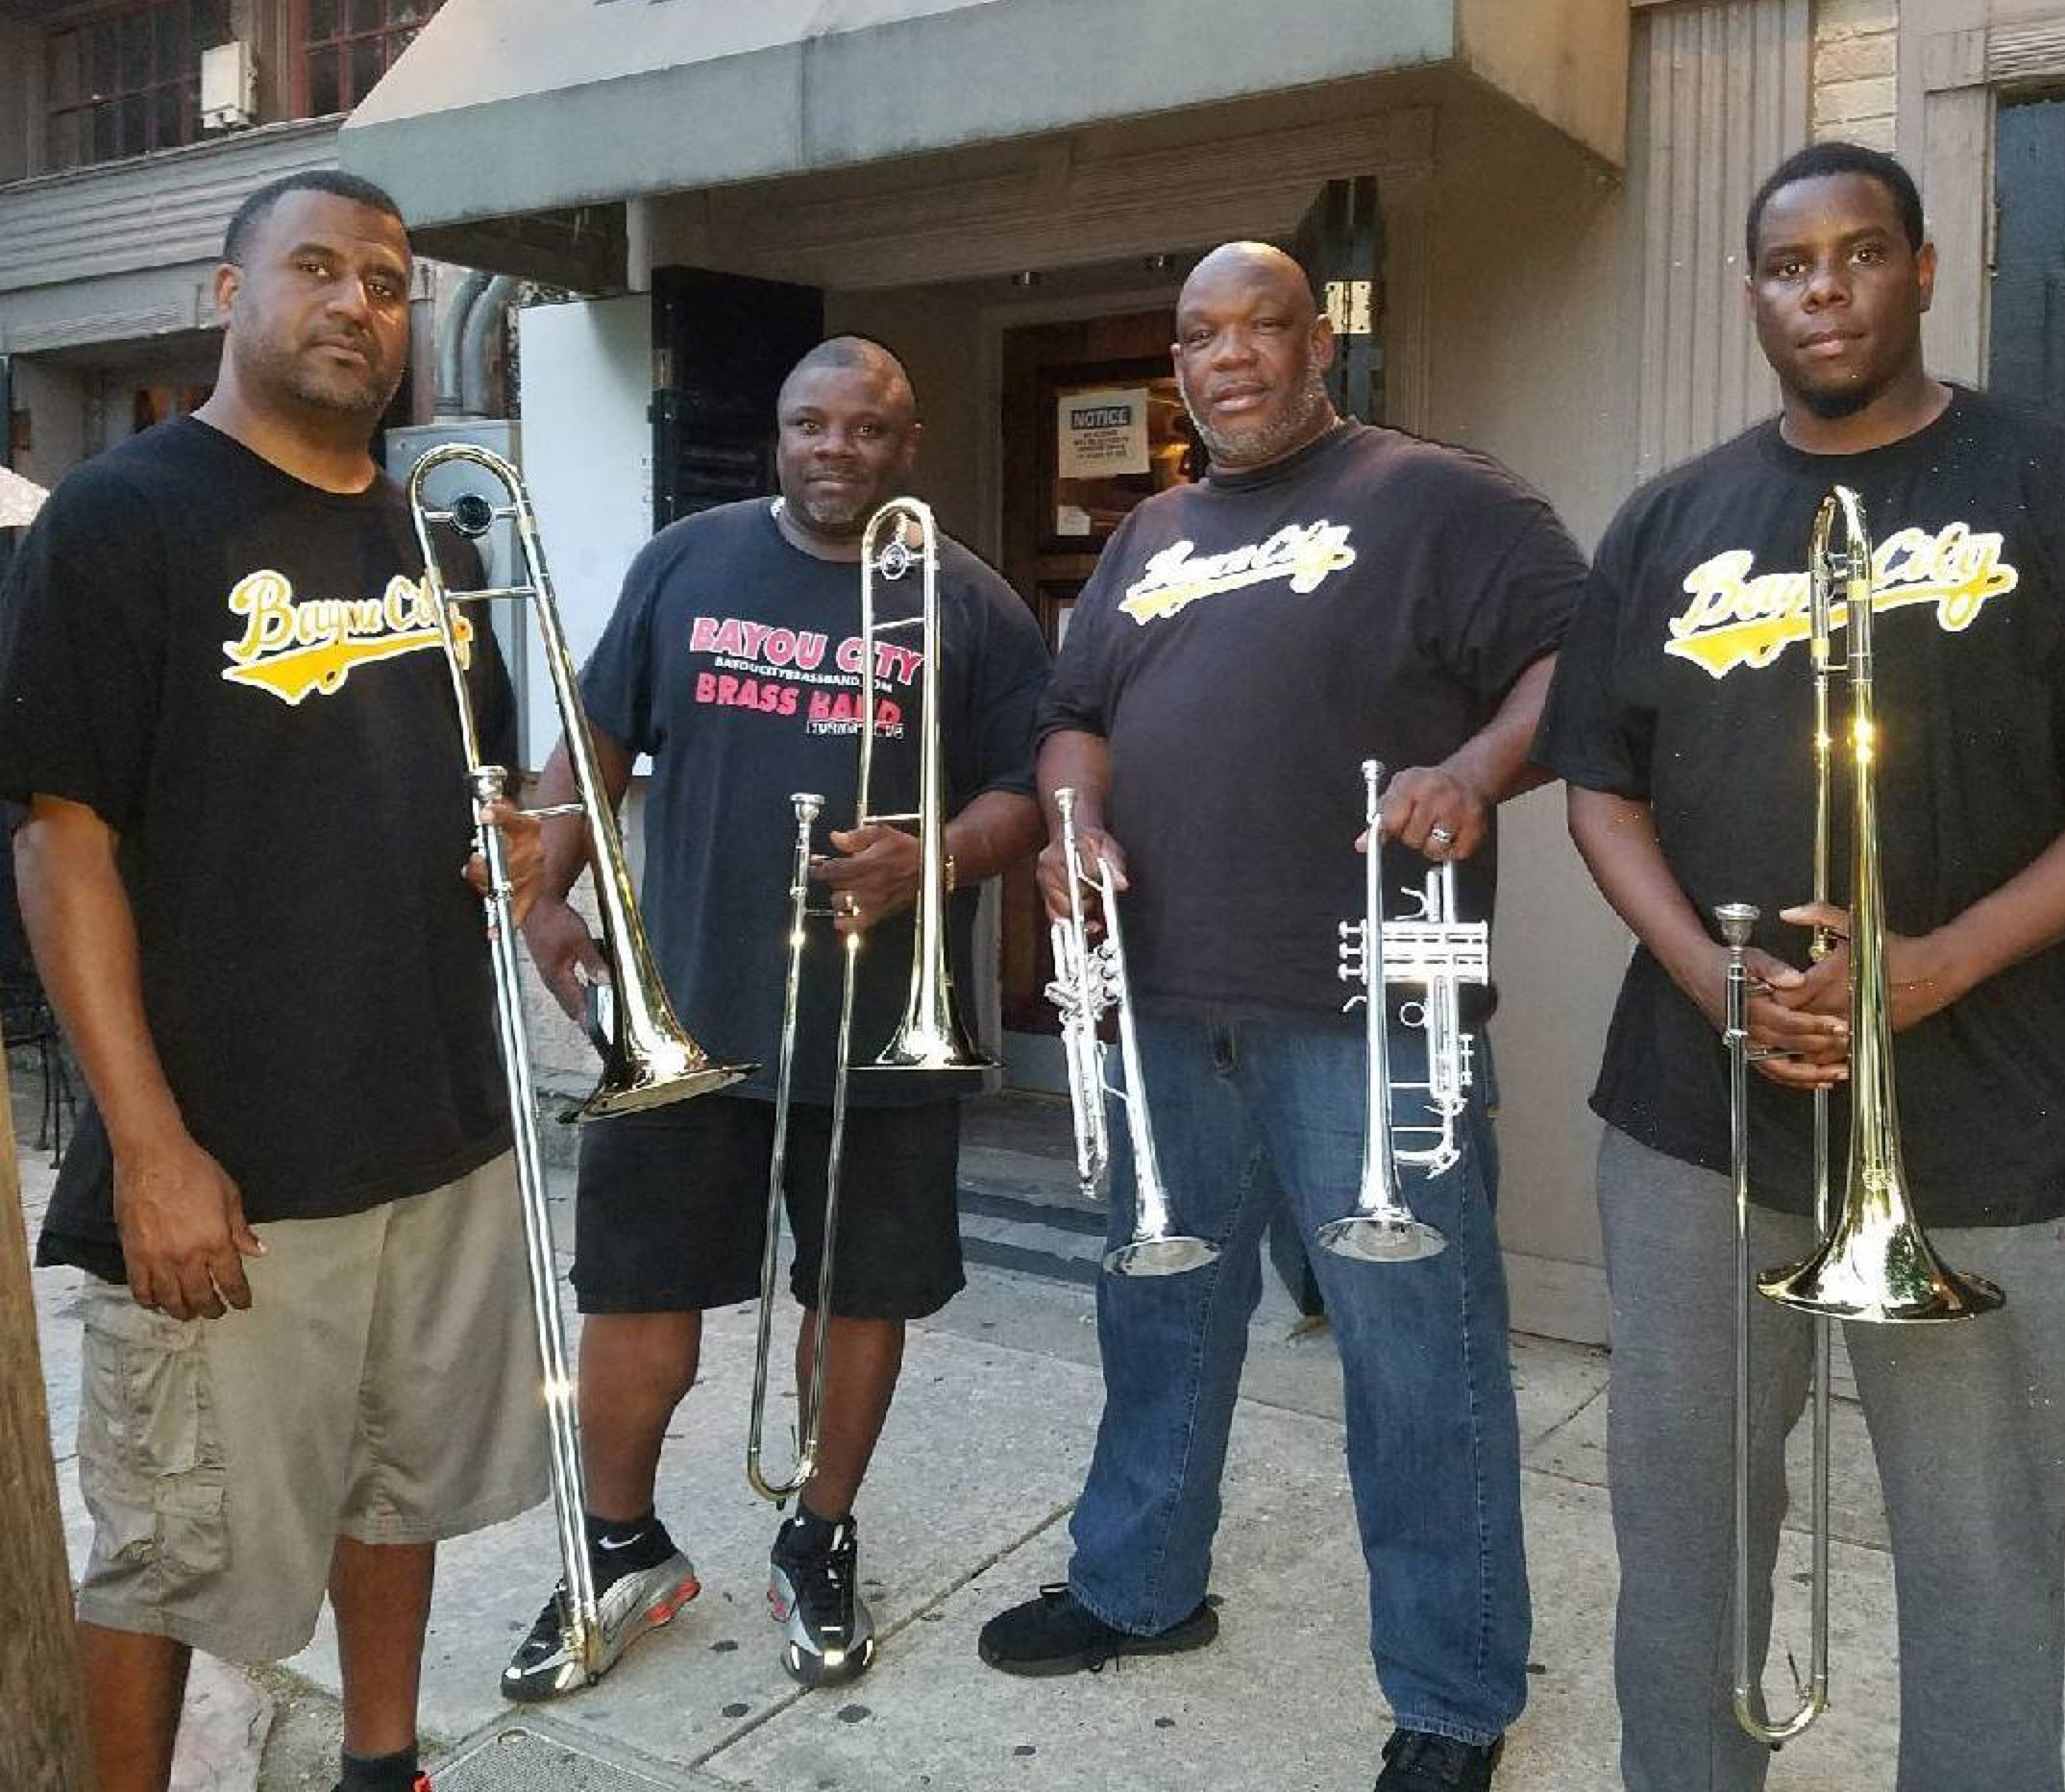 Bayou City Brass Band Members.JPG